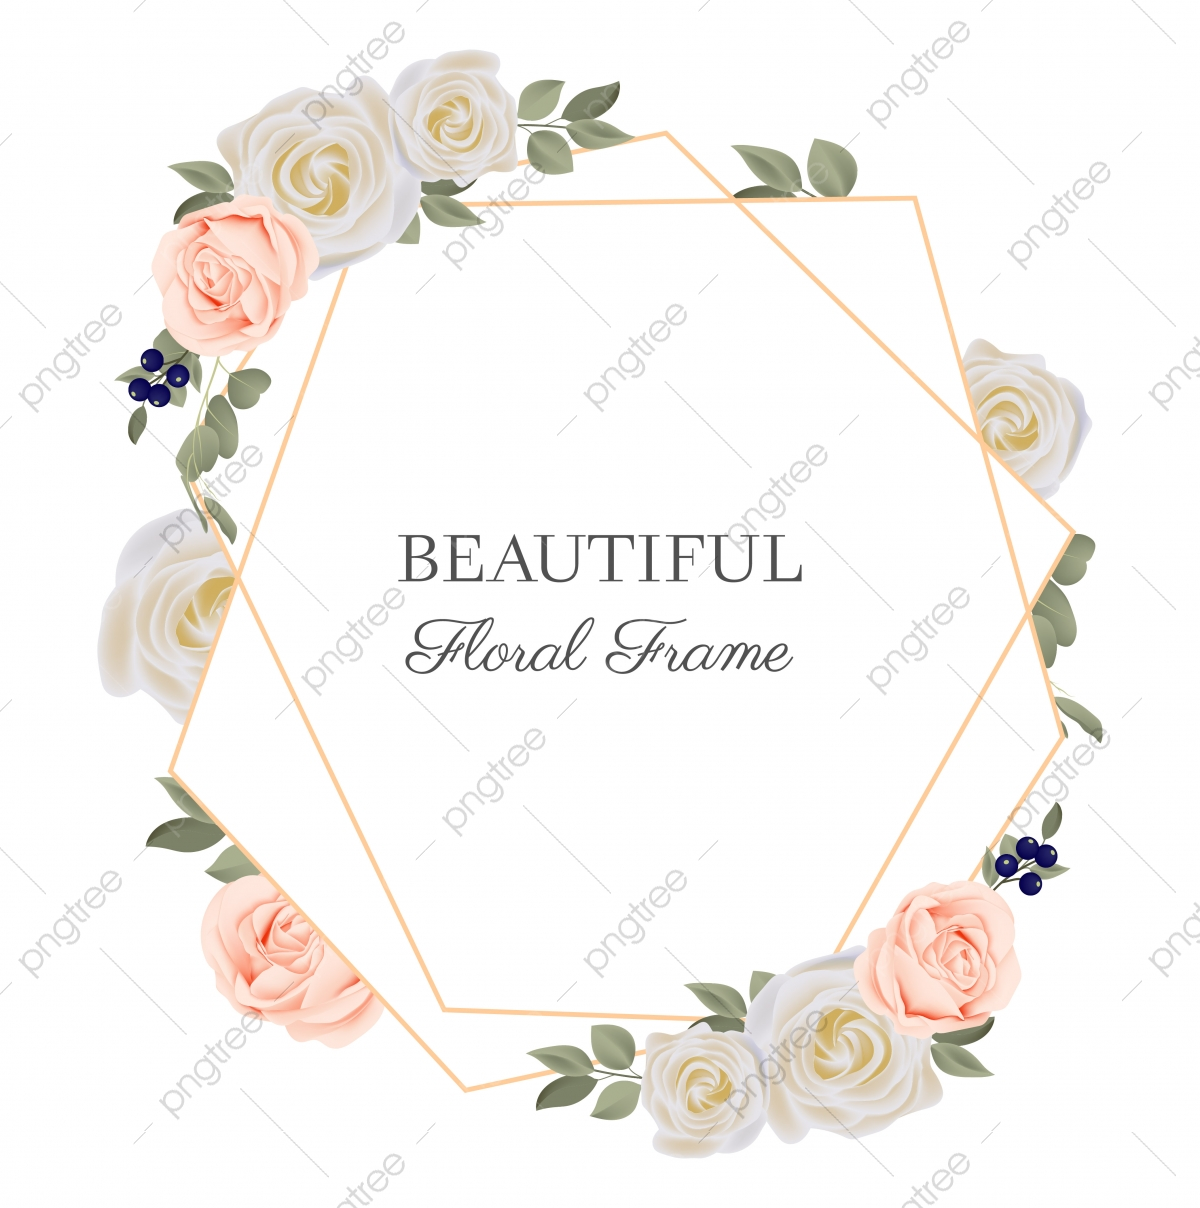 Rustic Rose Floral Frame With Golden Geometric Line Gold Rustic